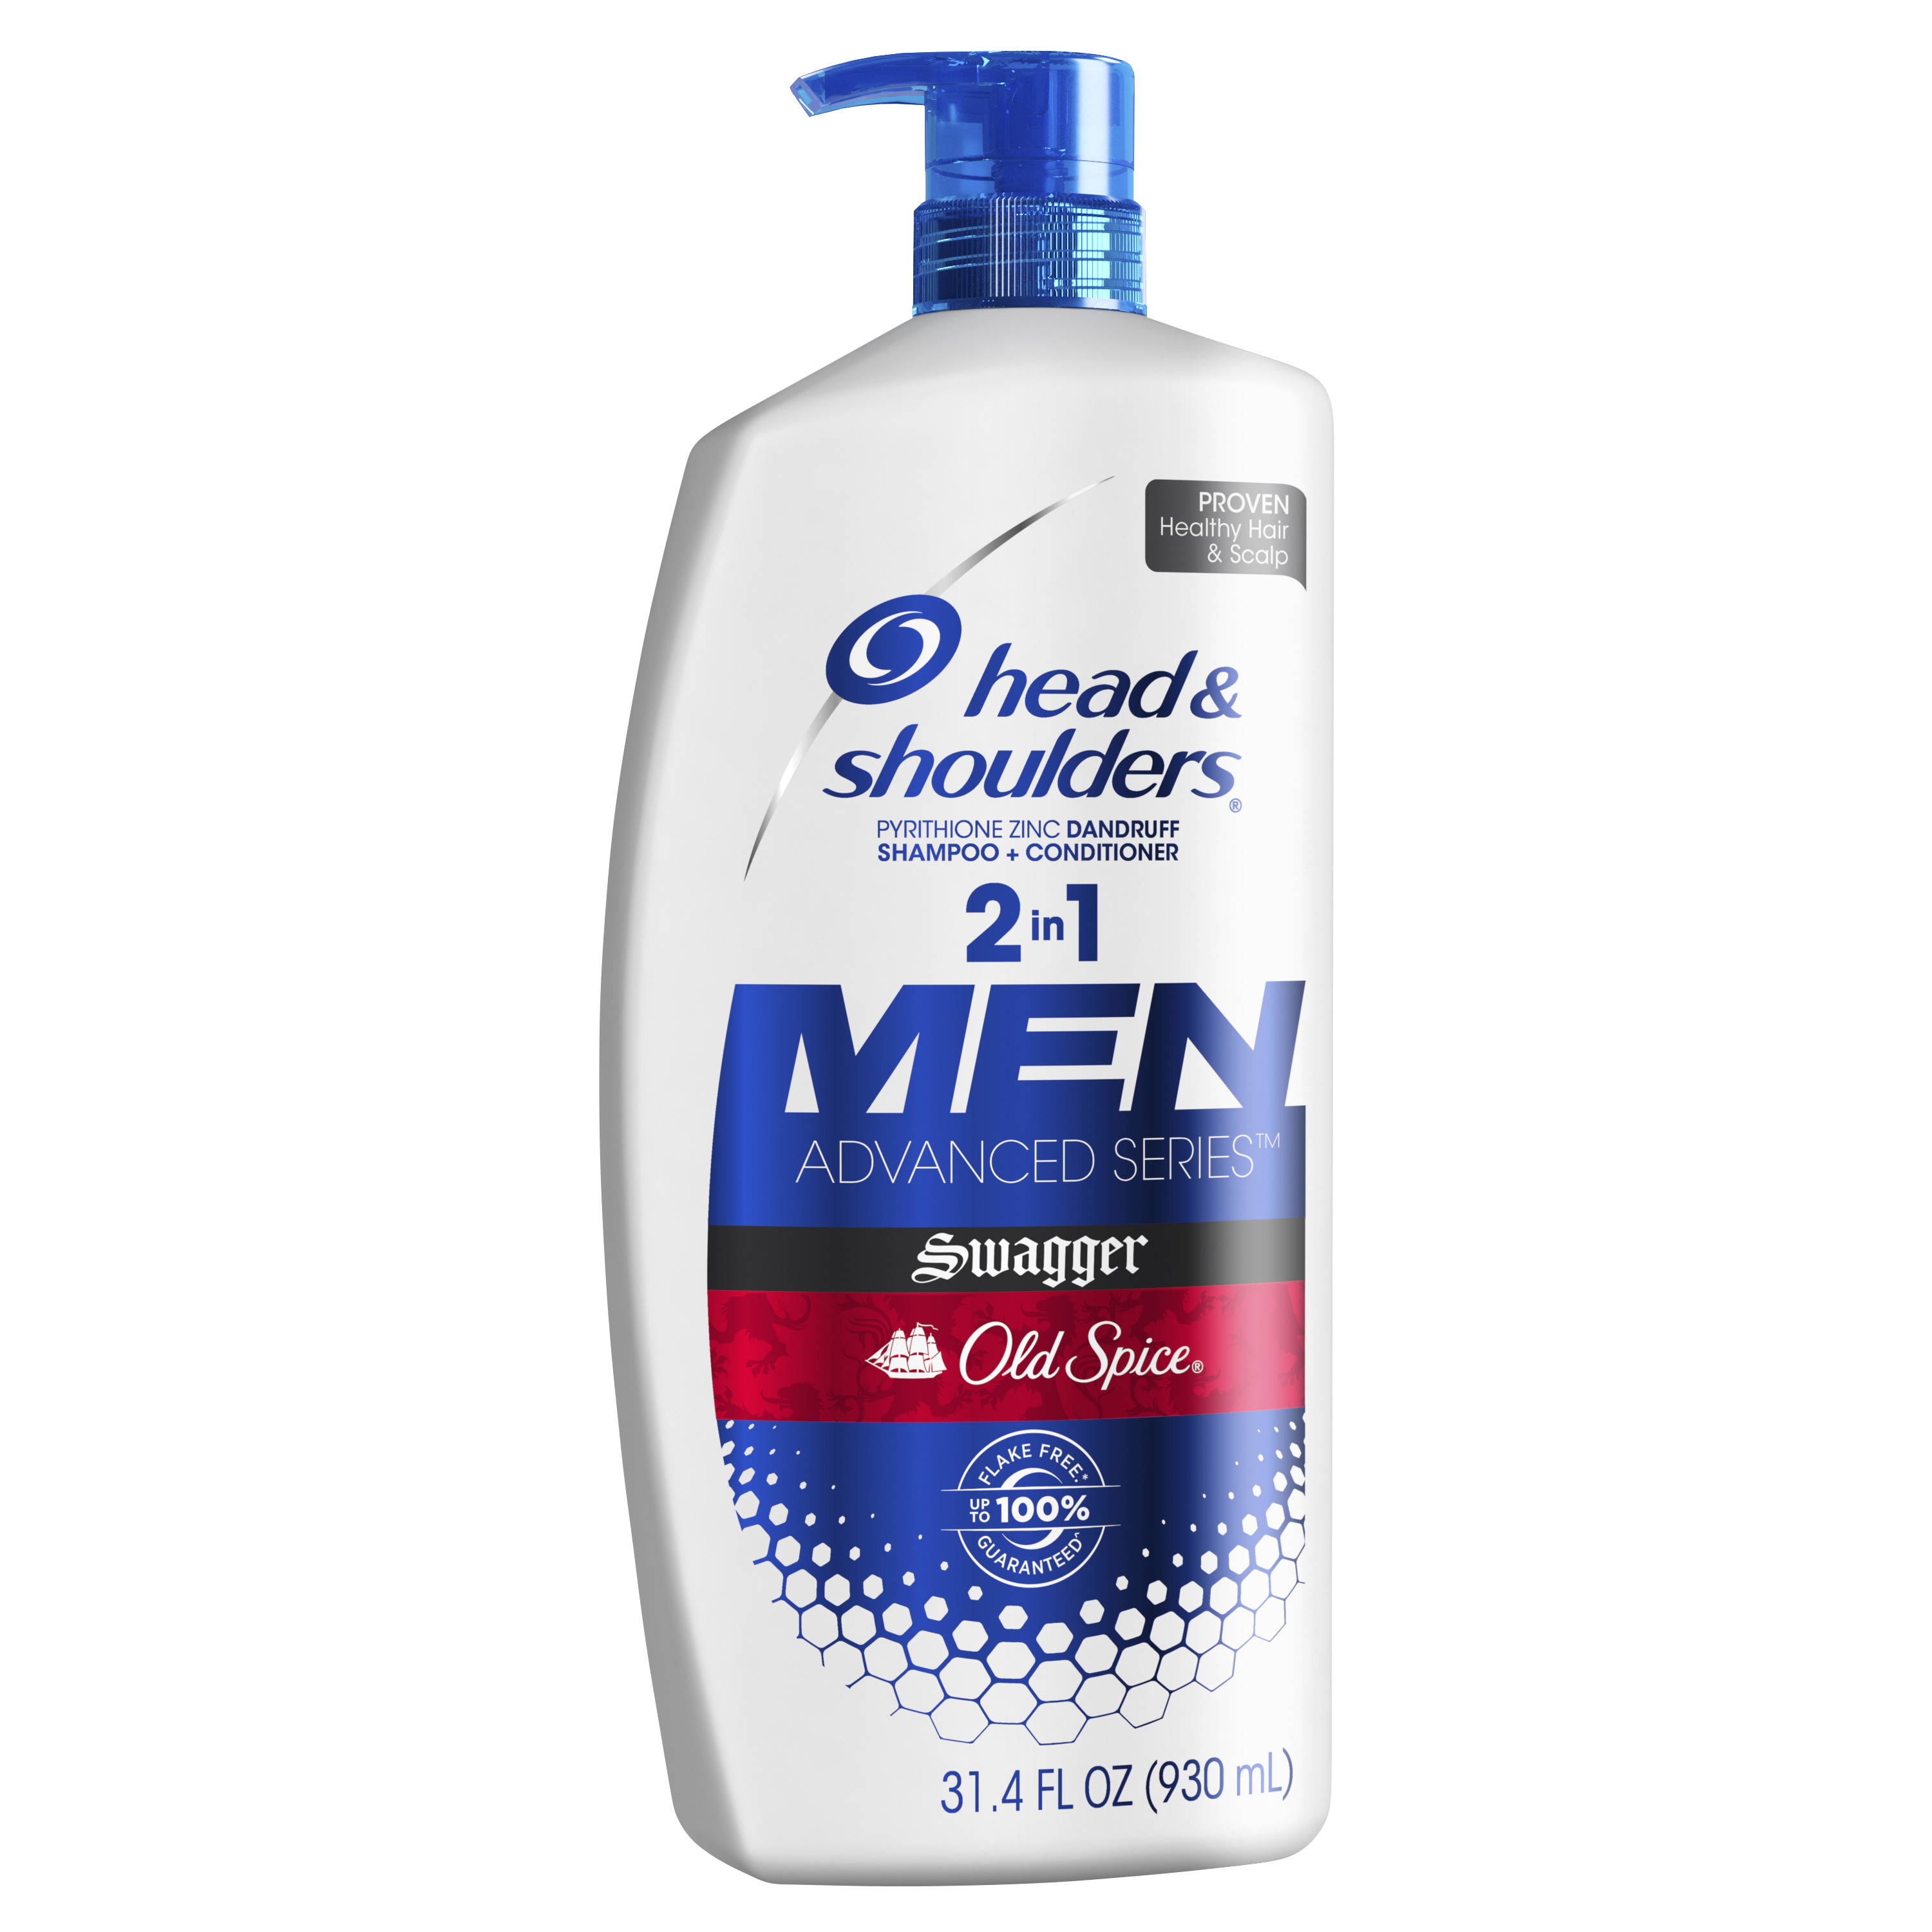 Head and Shoulders Old Spice Swagger Dandruff 2 in 1 Shampoo and Conditioner, 31.4 fl oz